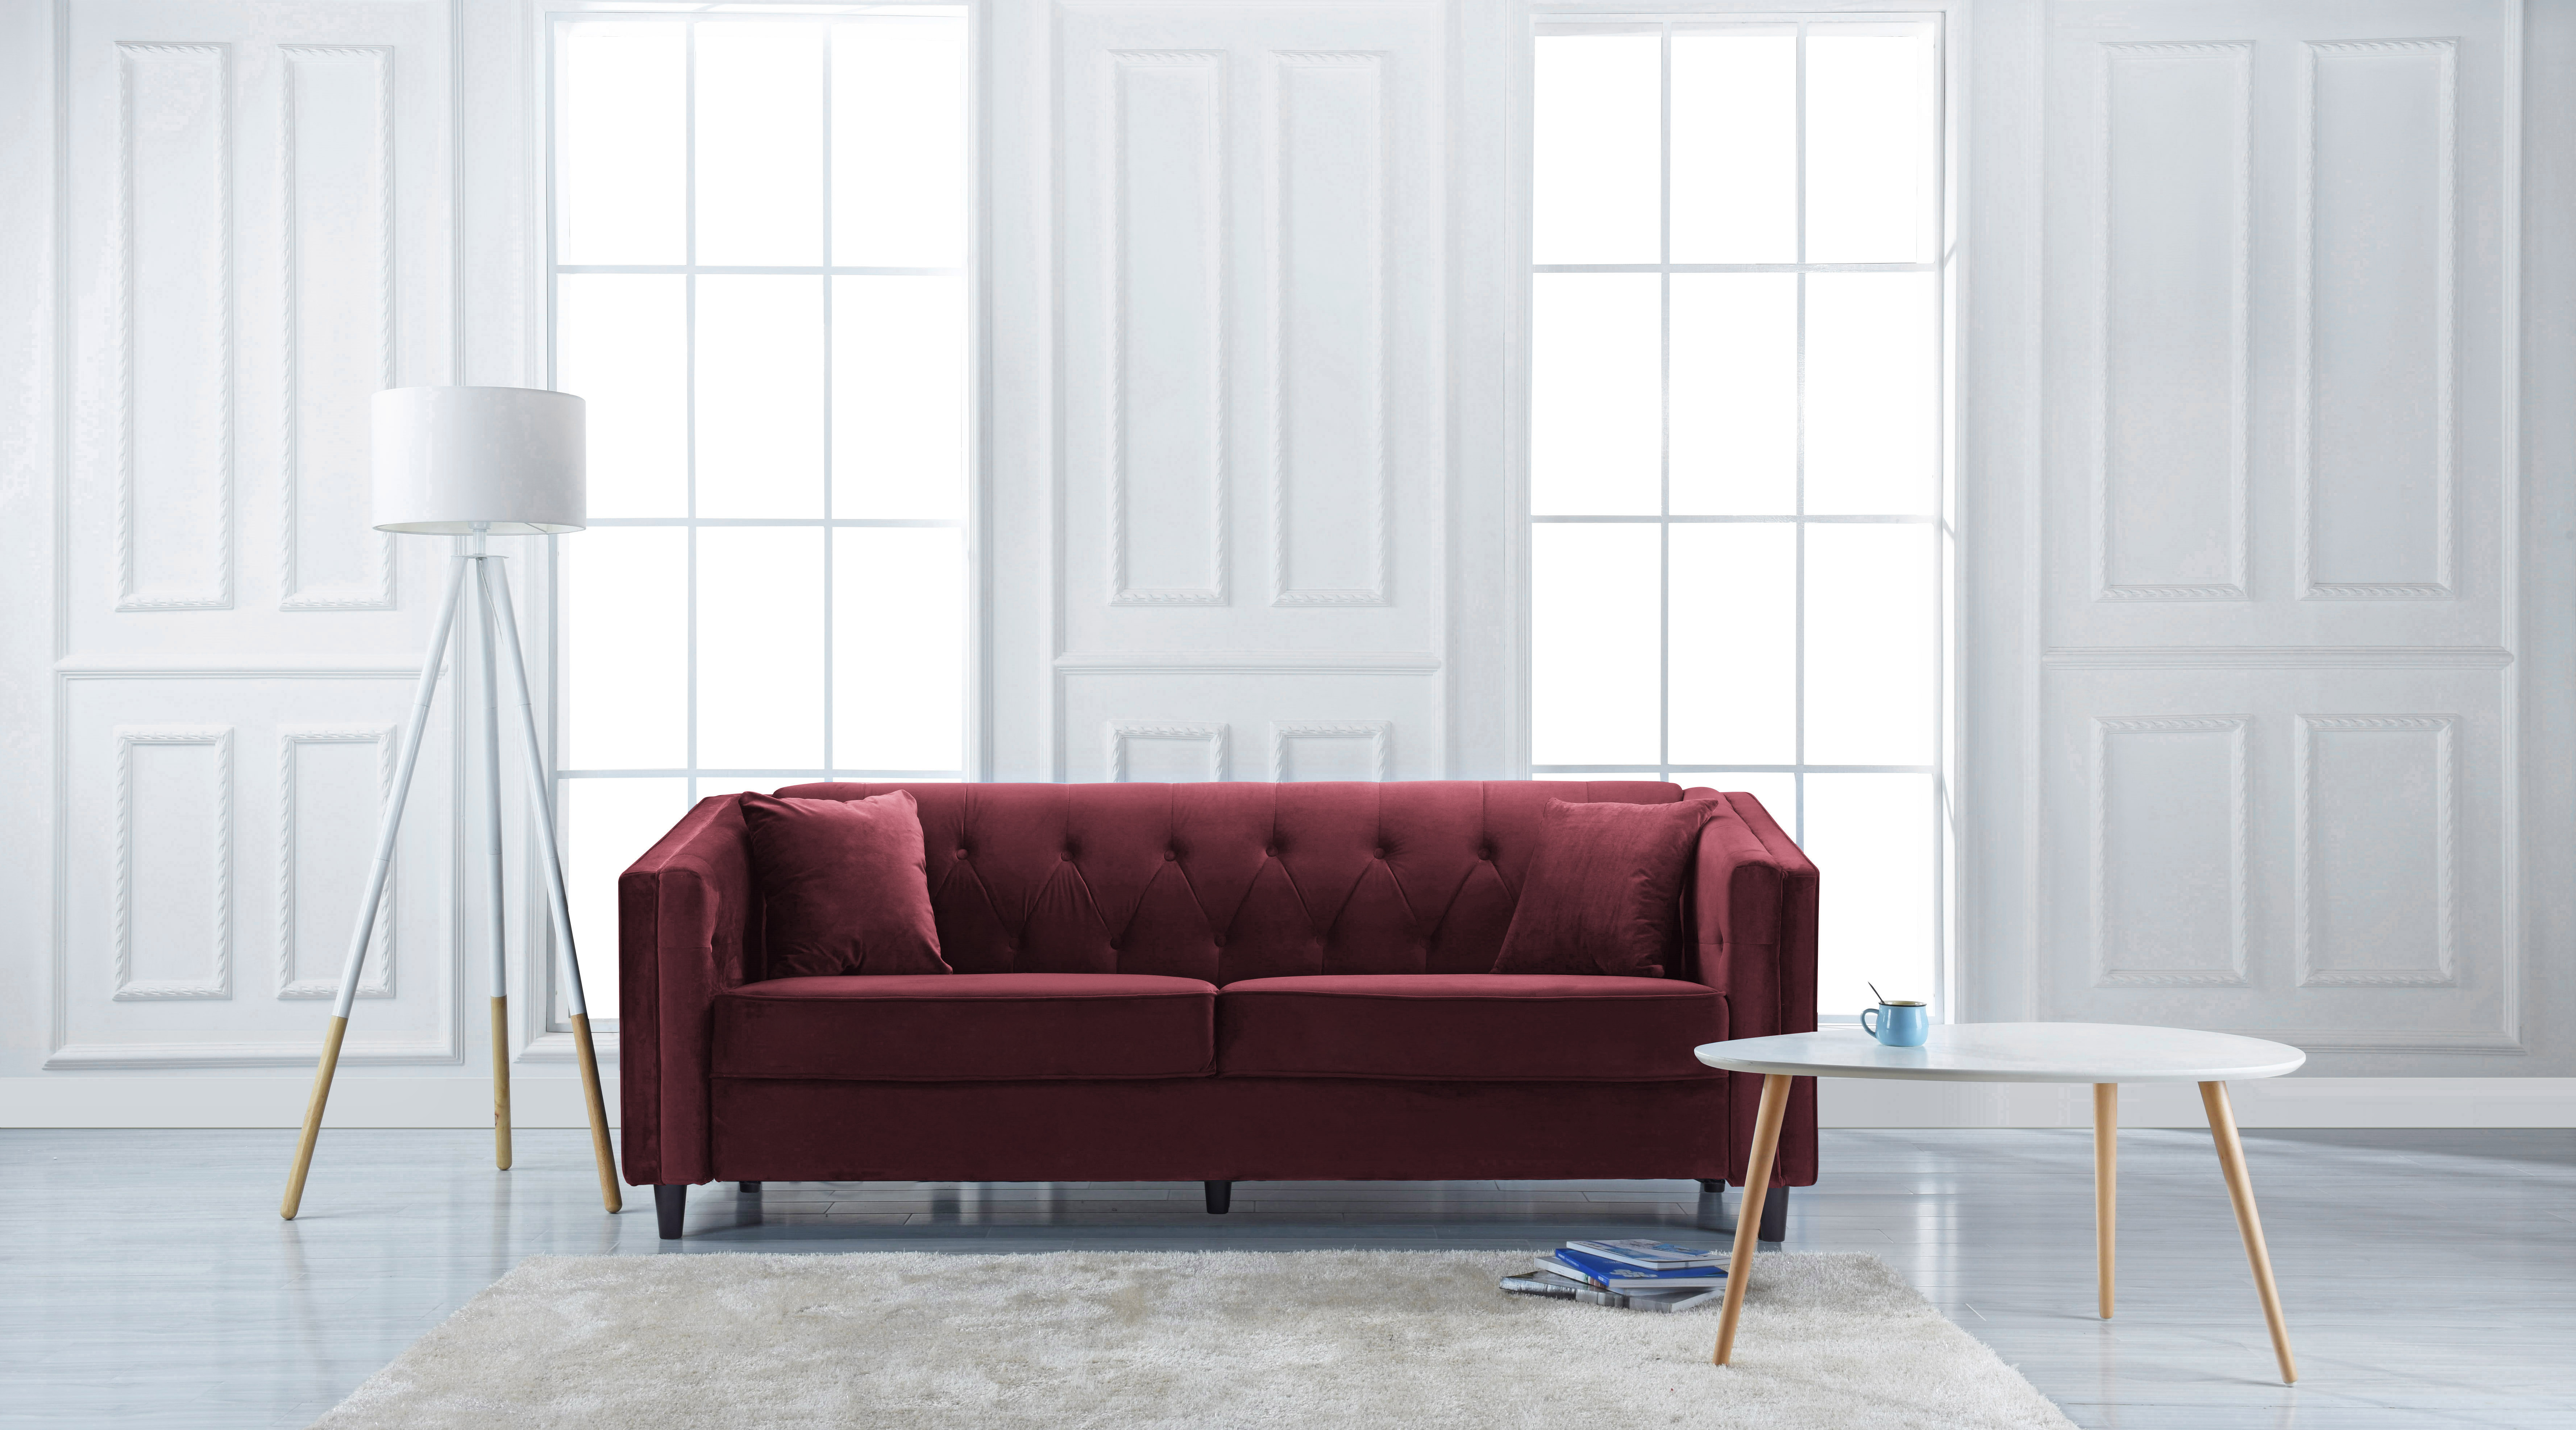 Classic Victorian Style Tufted Velvet Sofa, Living Room Couch With Tufted  Buttons (Maroon)   Walmart.com